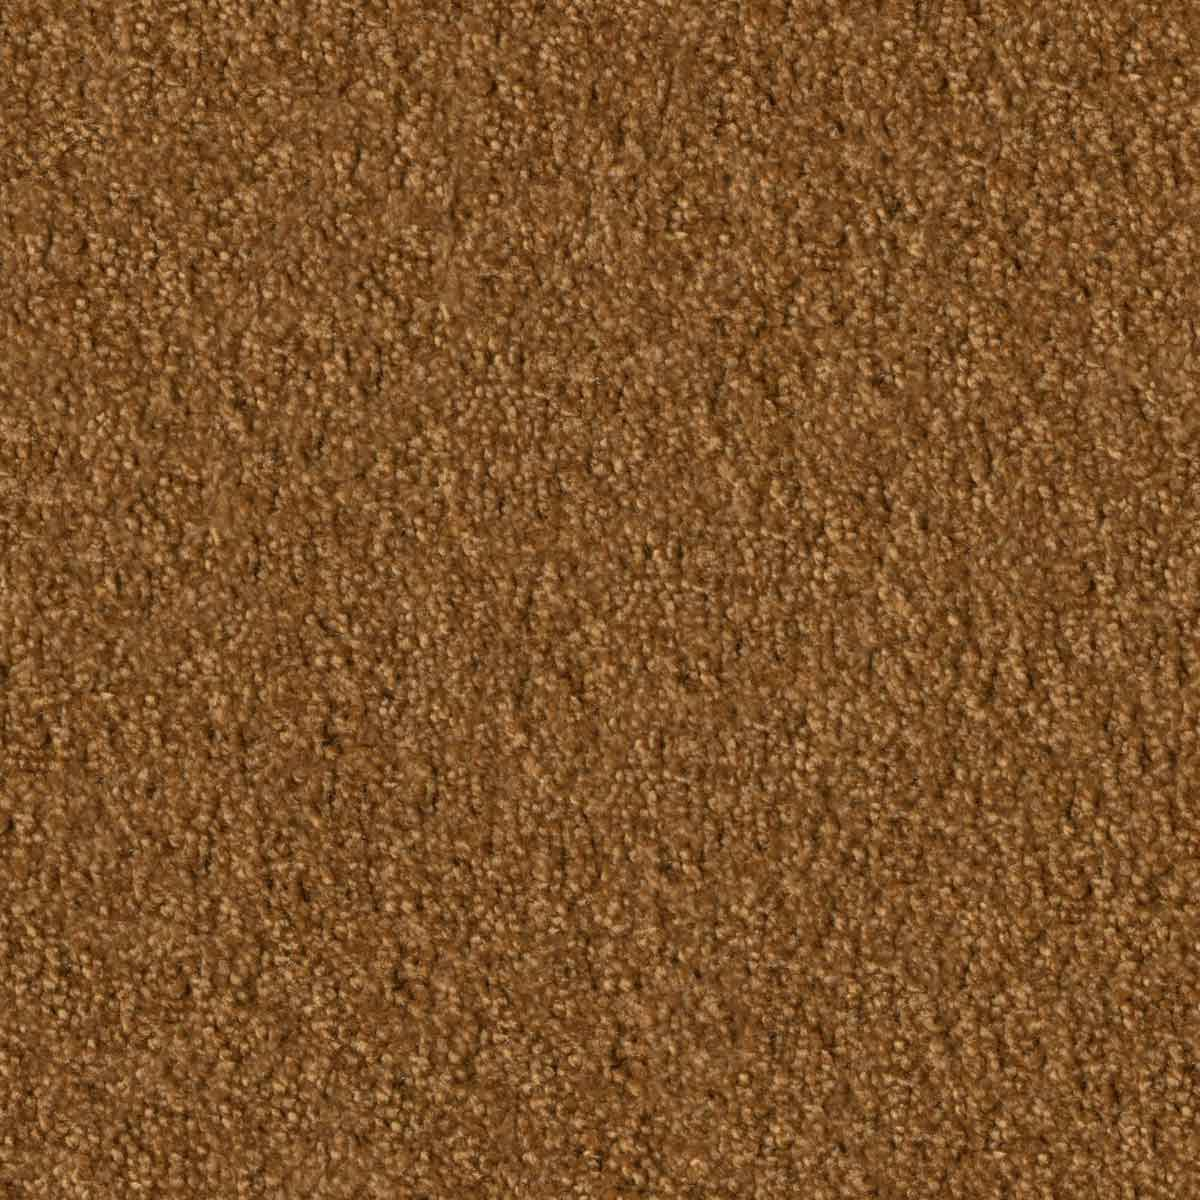 silky seal teppich cognac 1 50 x 3 50 m object carpet. Black Bedroom Furniture Sets. Home Design Ideas